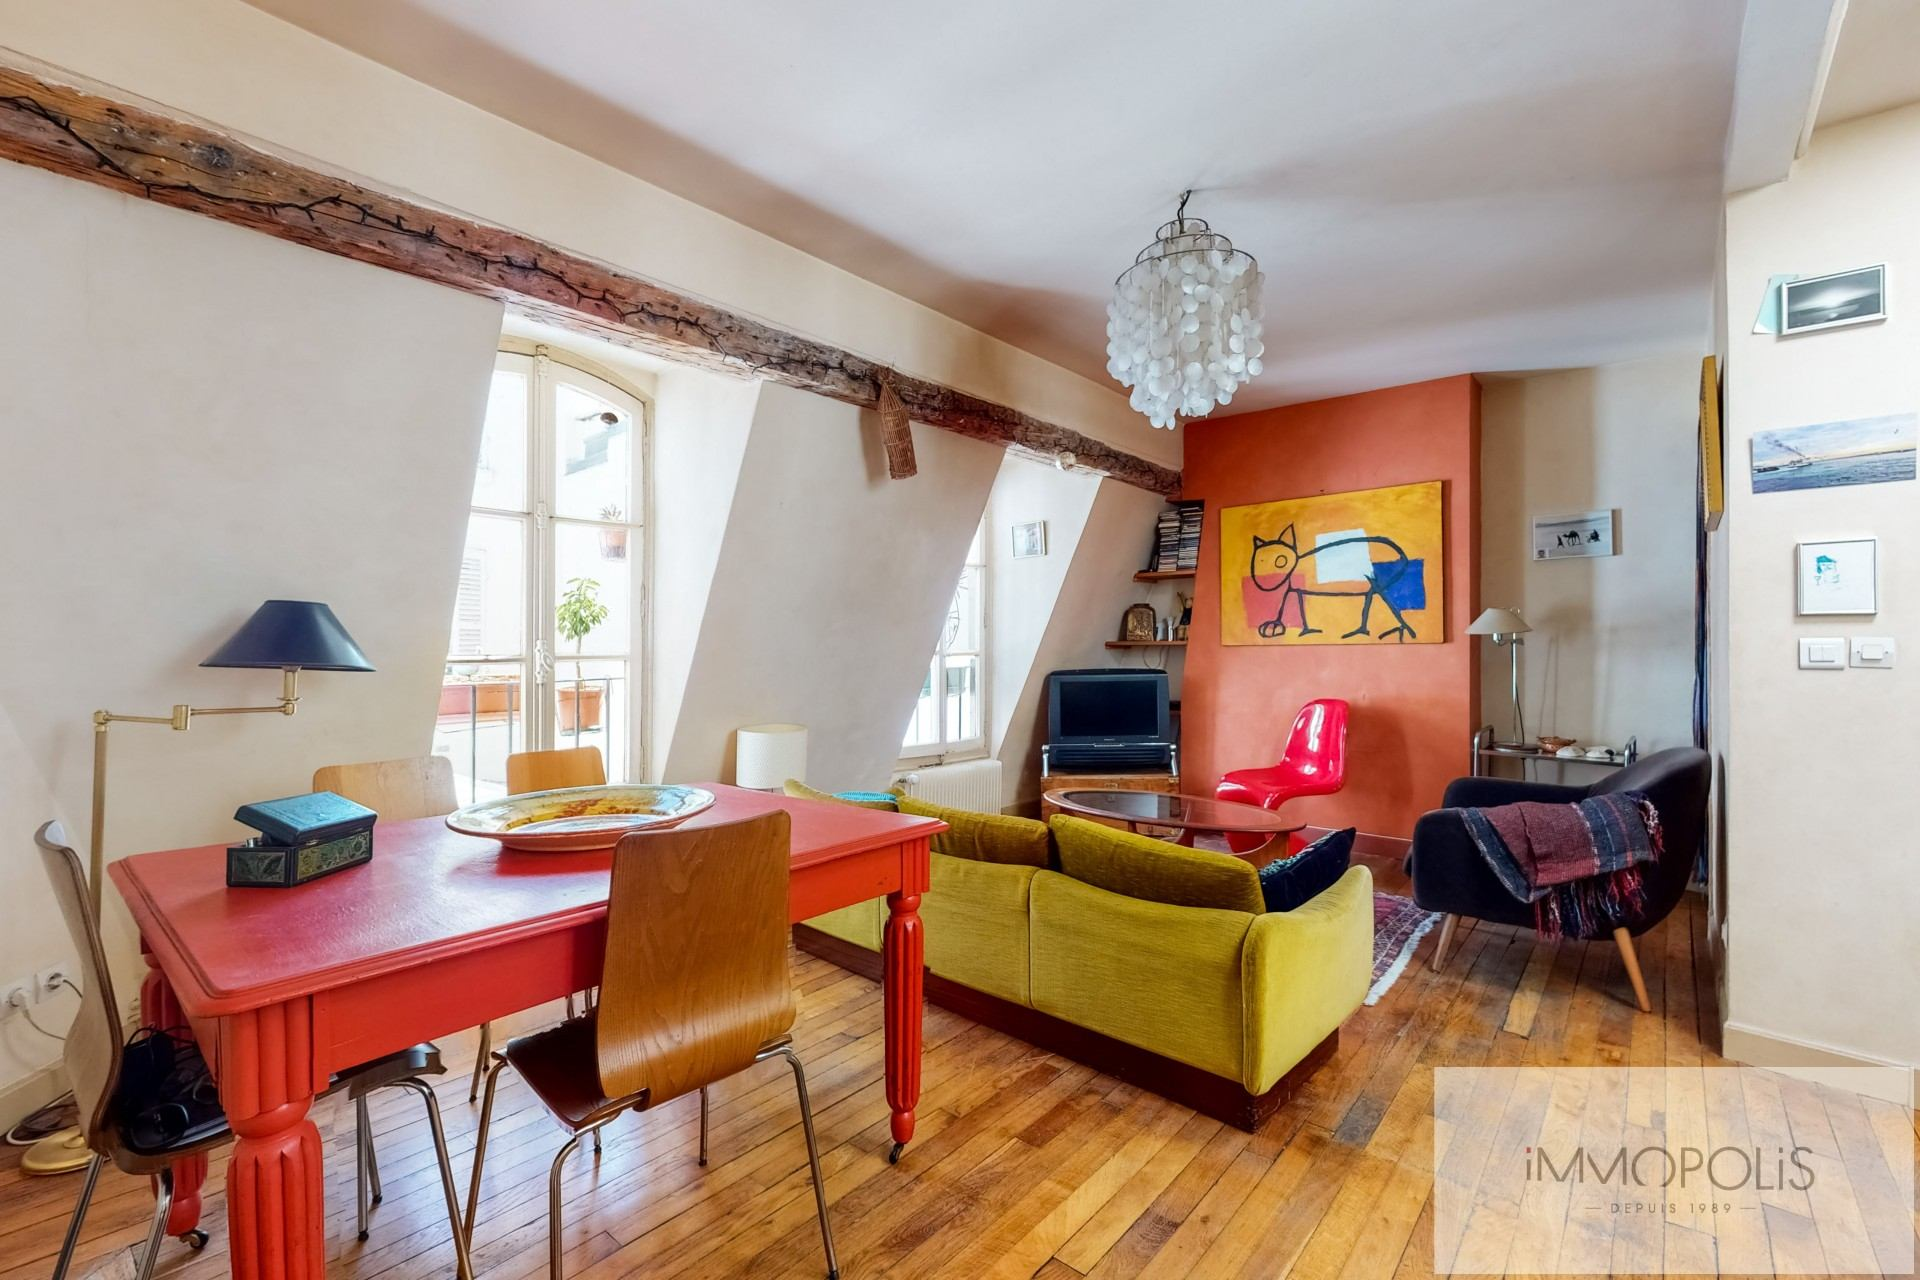 Appartement atypique, plein de charme, Rue Richard Lenoir – Paris XIème 1